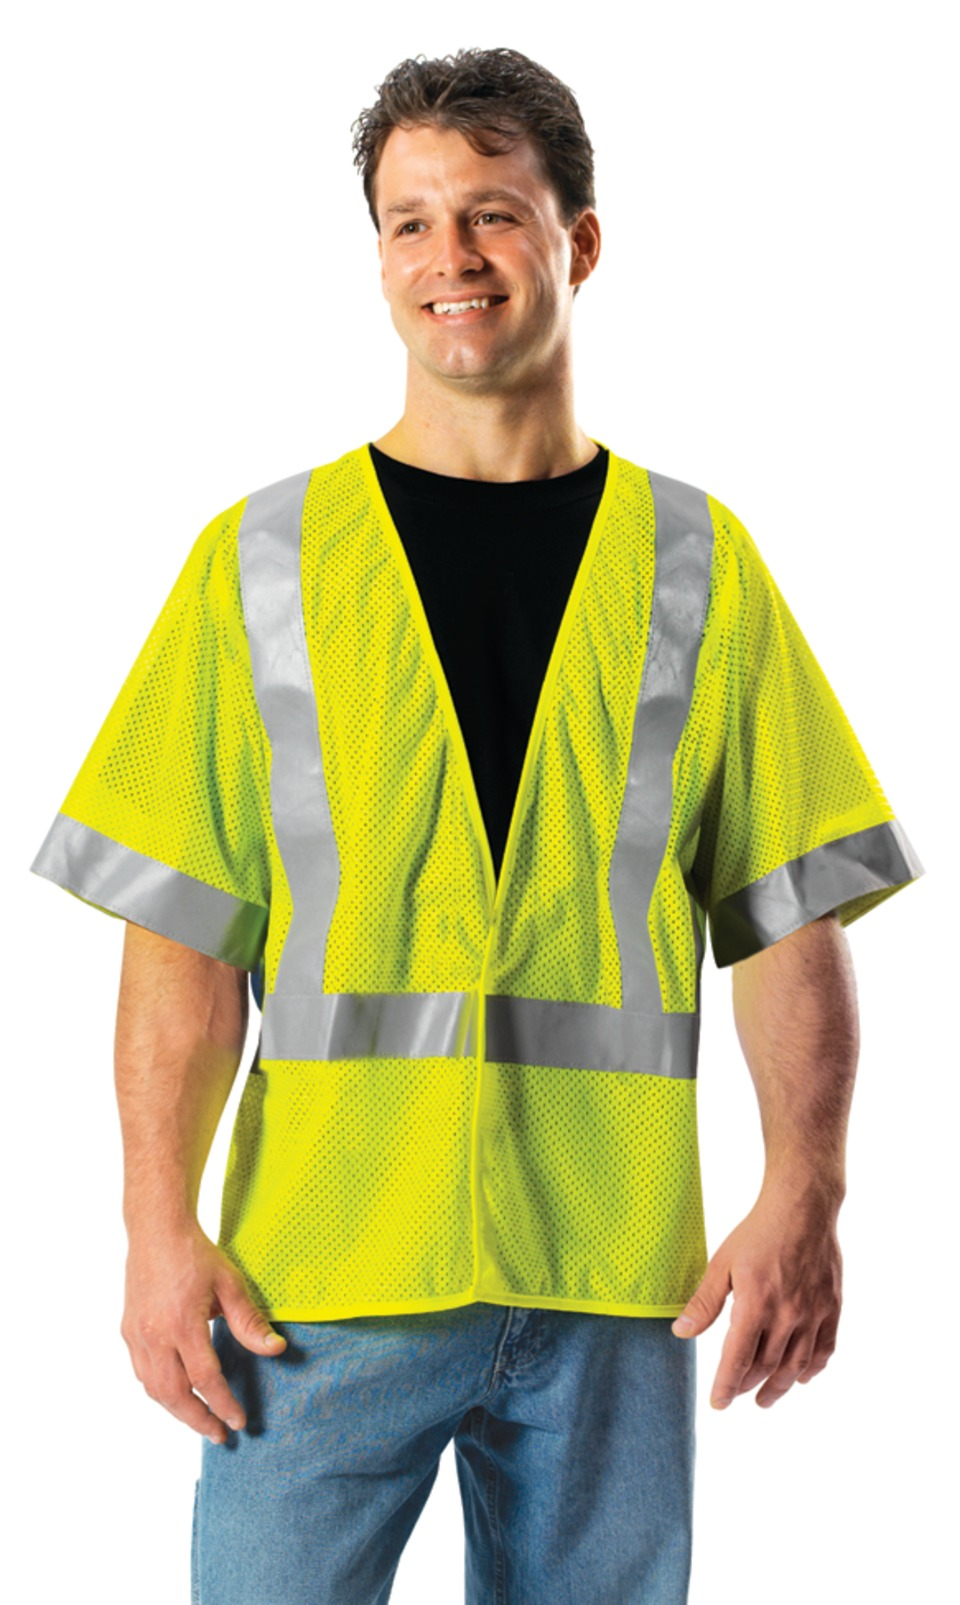 Aw Direct Inc Ks 90 Class 3 Vest In Officer Visibility Pay less when you use this fantastic voucher code & discount no need to add any voucher code & discount code when you checkout to redeem the deal. http www officer com technology traffic officer visibility traffic officer visibility product 10041118 aw direct inc ks90 class 3 vest